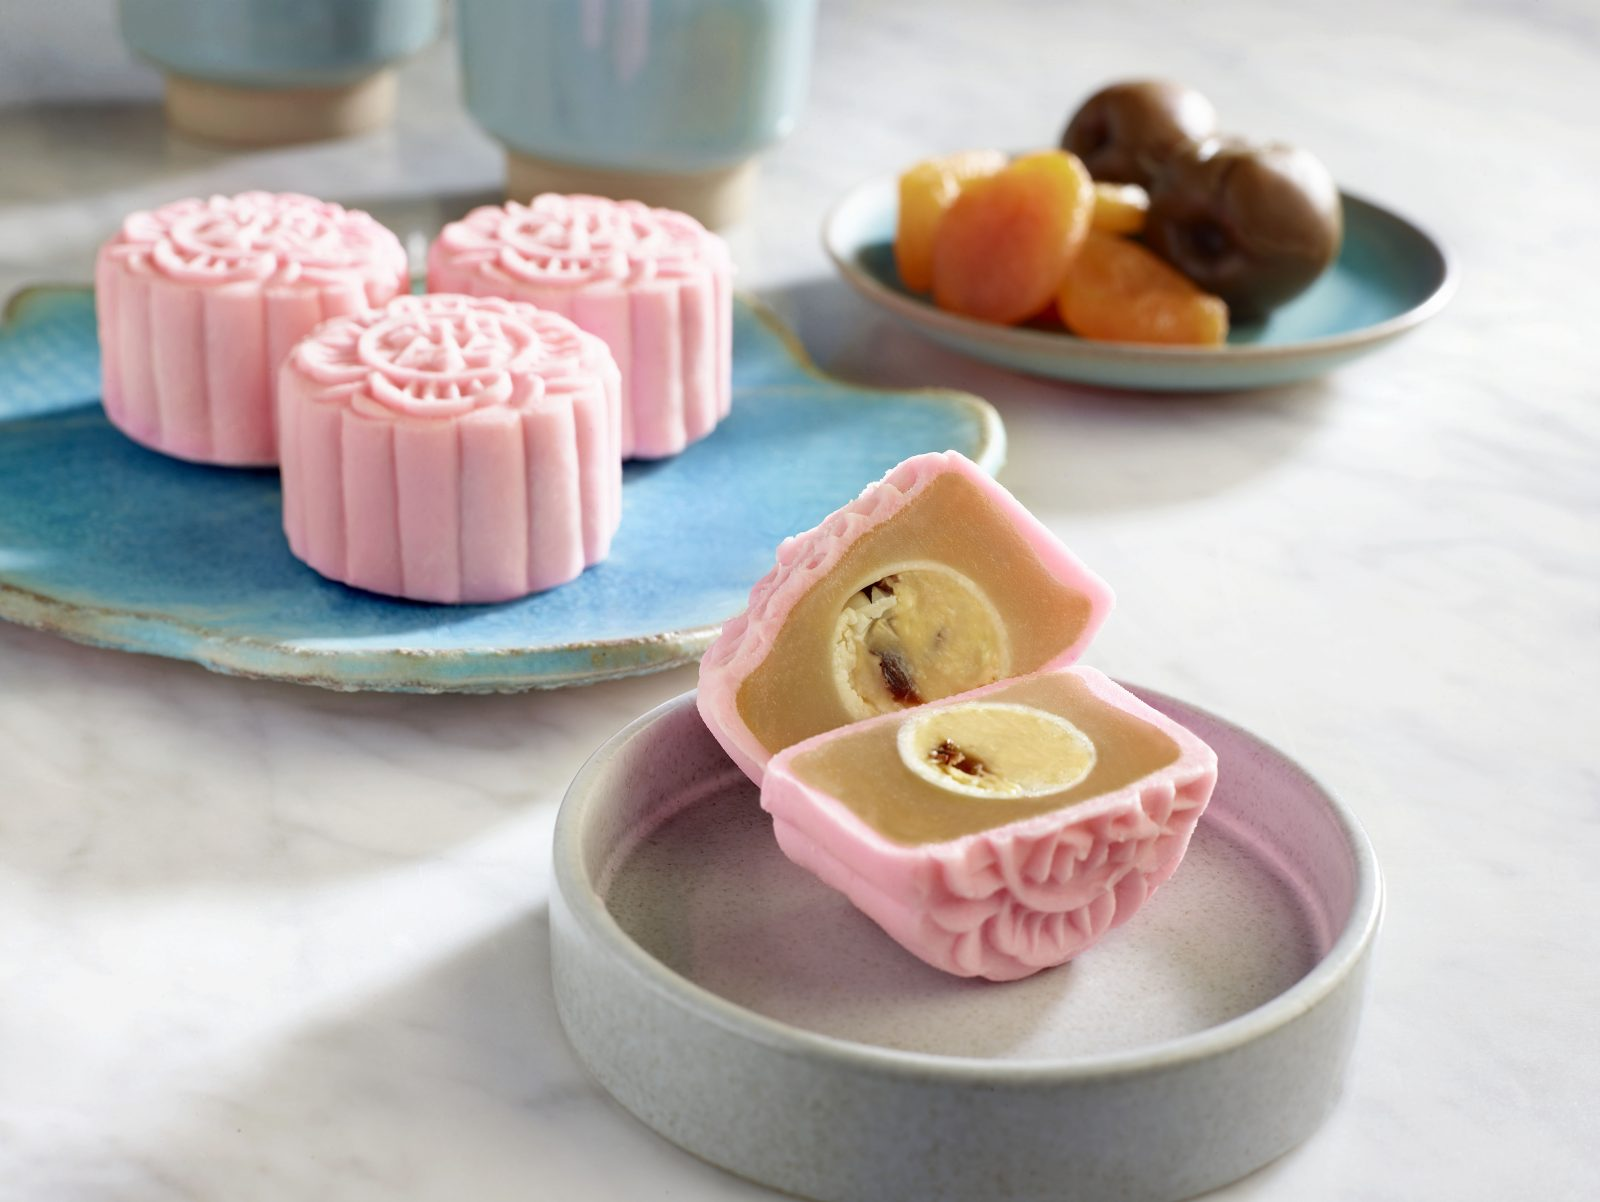 Apricot and Sourplum Snowskin Mooncake by Raffles Hotel